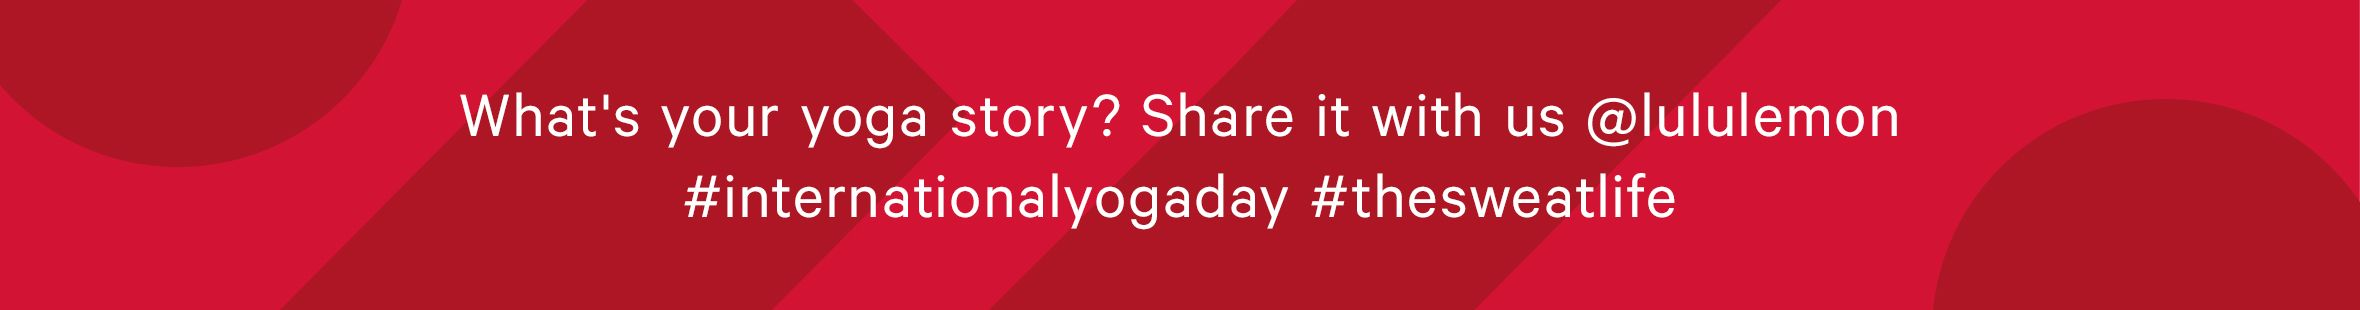 What's your yoga story?